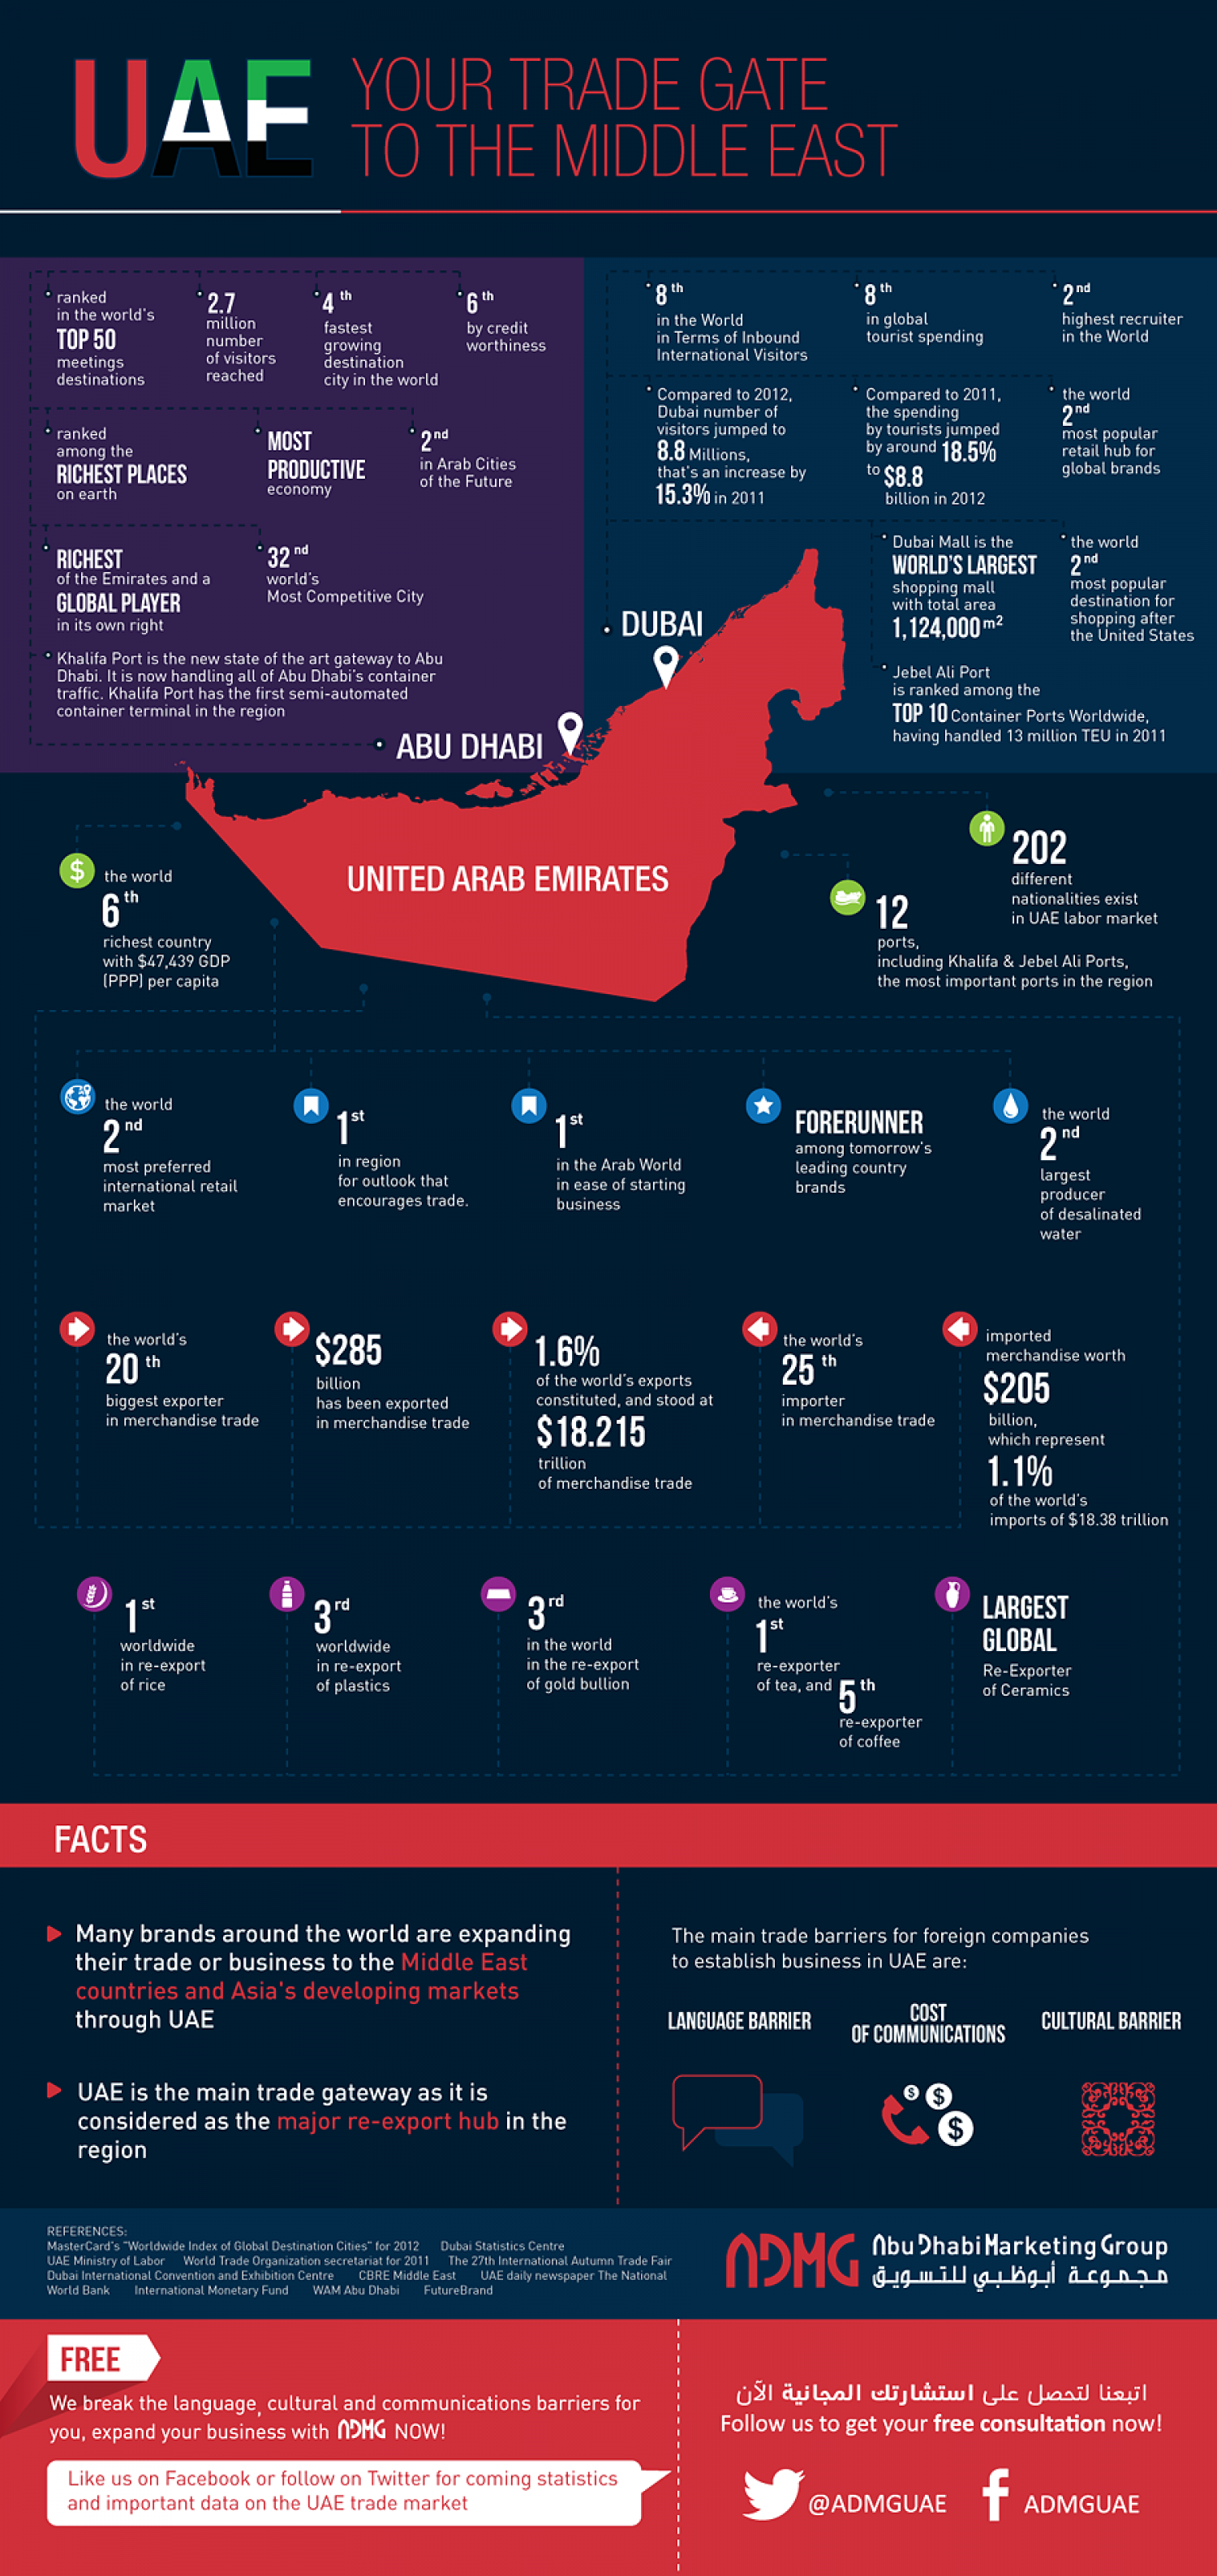 UAE, Your trade gate to the Middle East Infographic